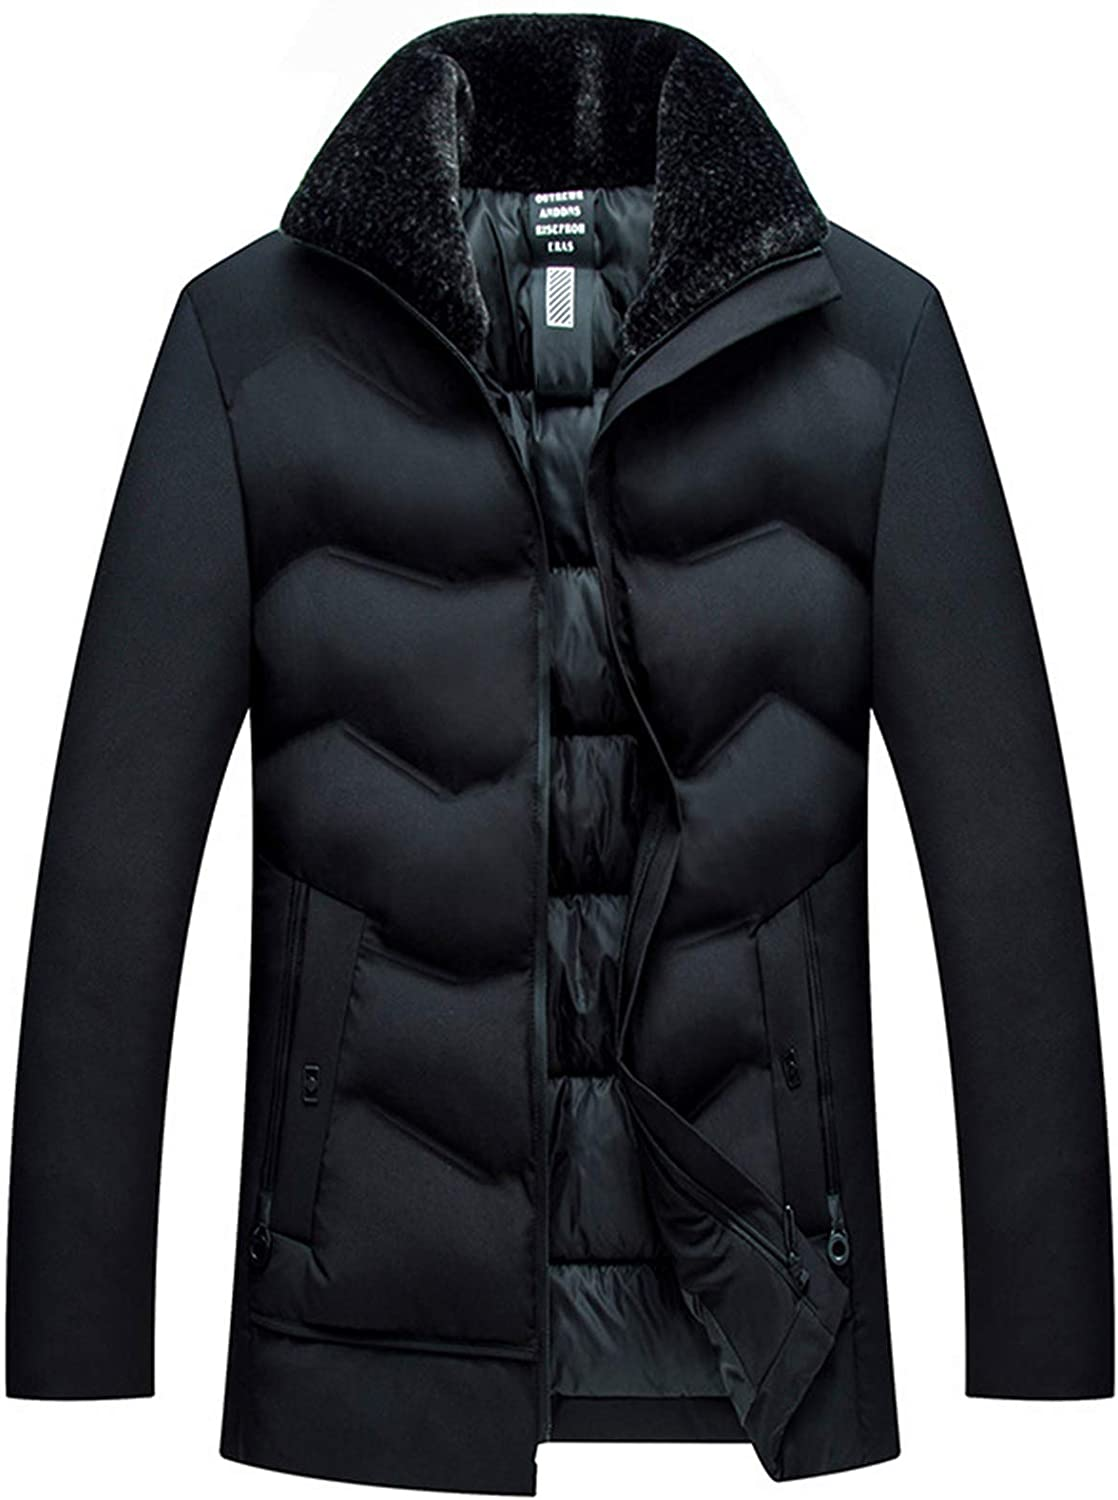 Mens Down Jacket, Warm Anorak Padded, Jackets with Multi Pockets, Insulated Down, Thickened Down Jacket Winter Cotton Clothing-Black, Green